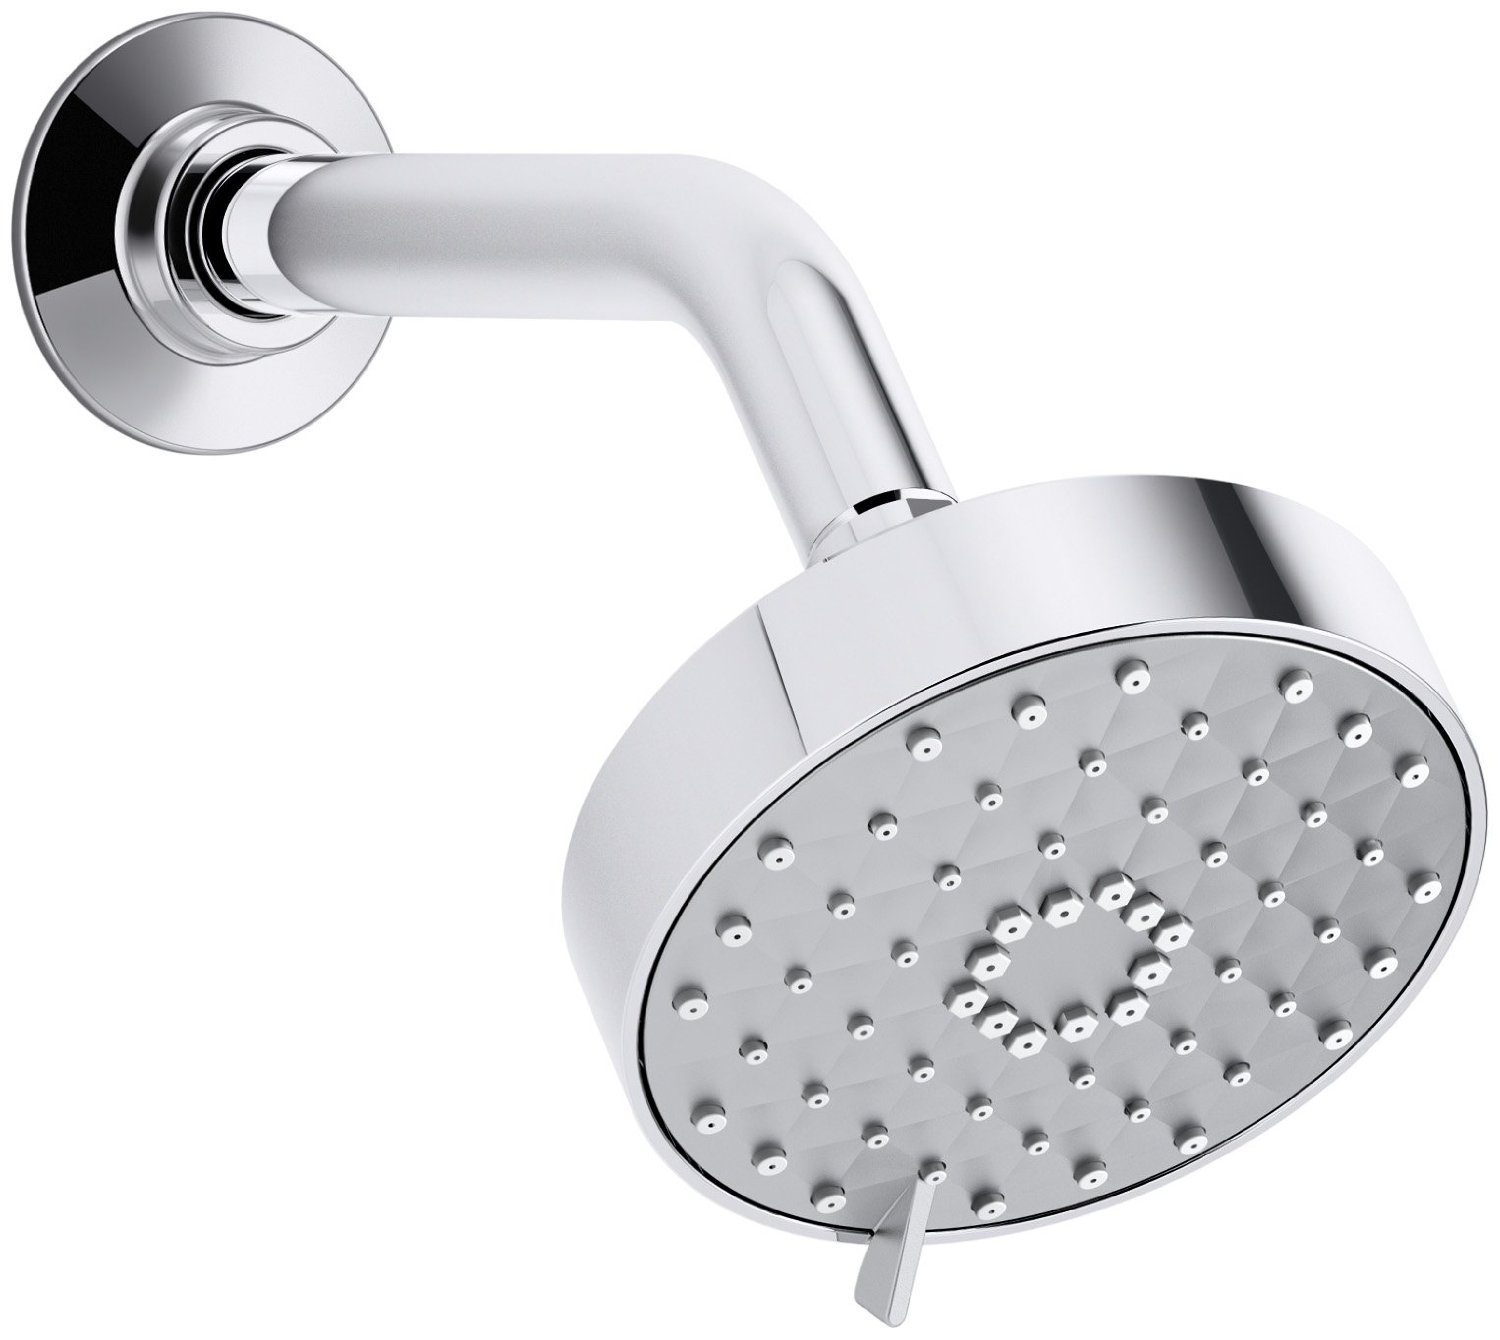 Best Kohelr Shower Head Review Quality And Elegant Design